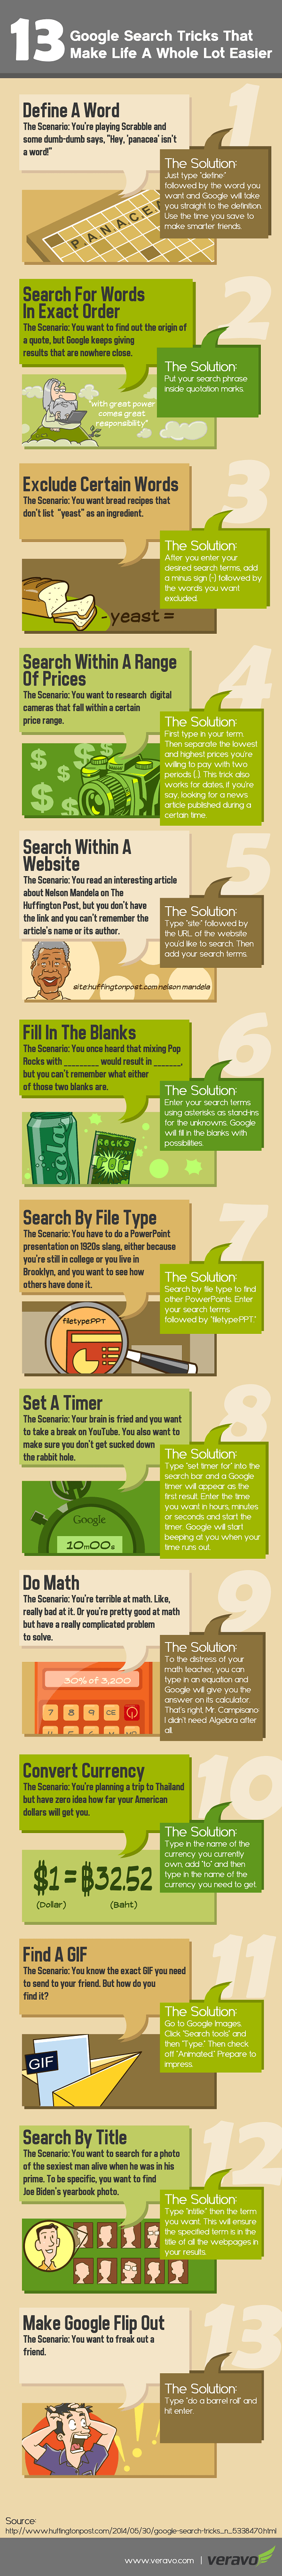 Google-Search-Tricks-infographic